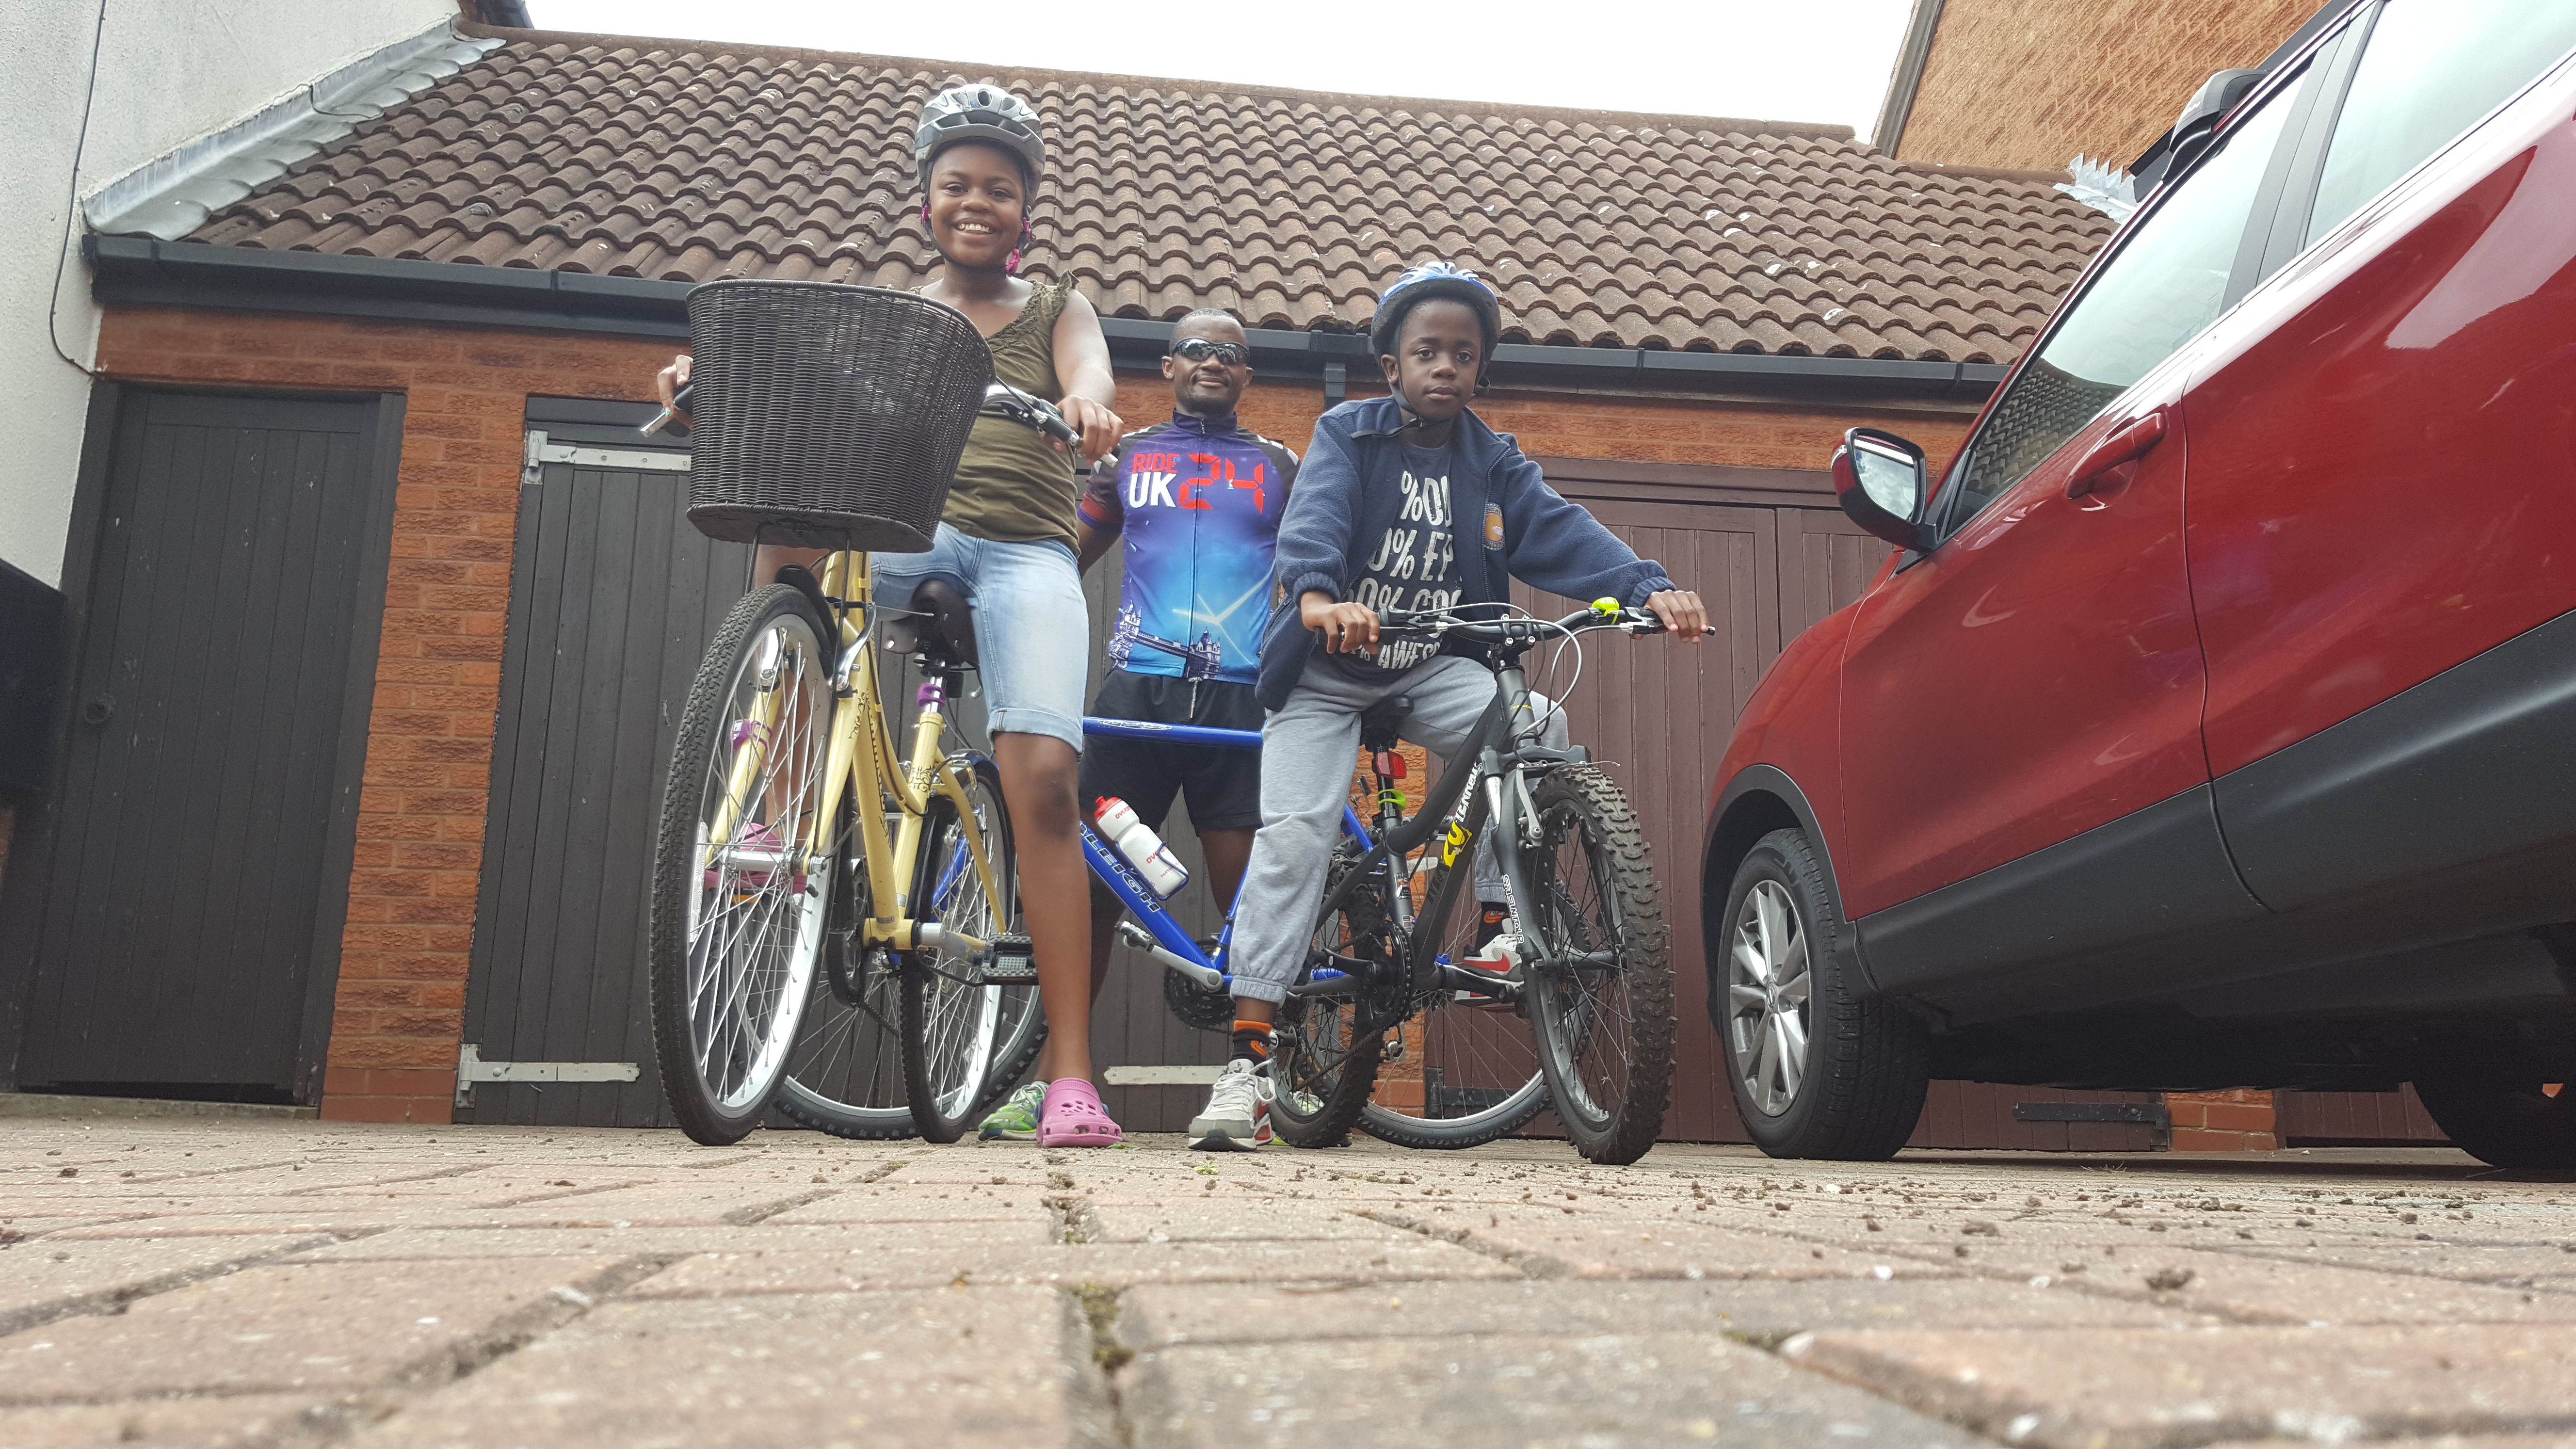 My longest mountain bike ride, to date, with the children (28 Aug 16)